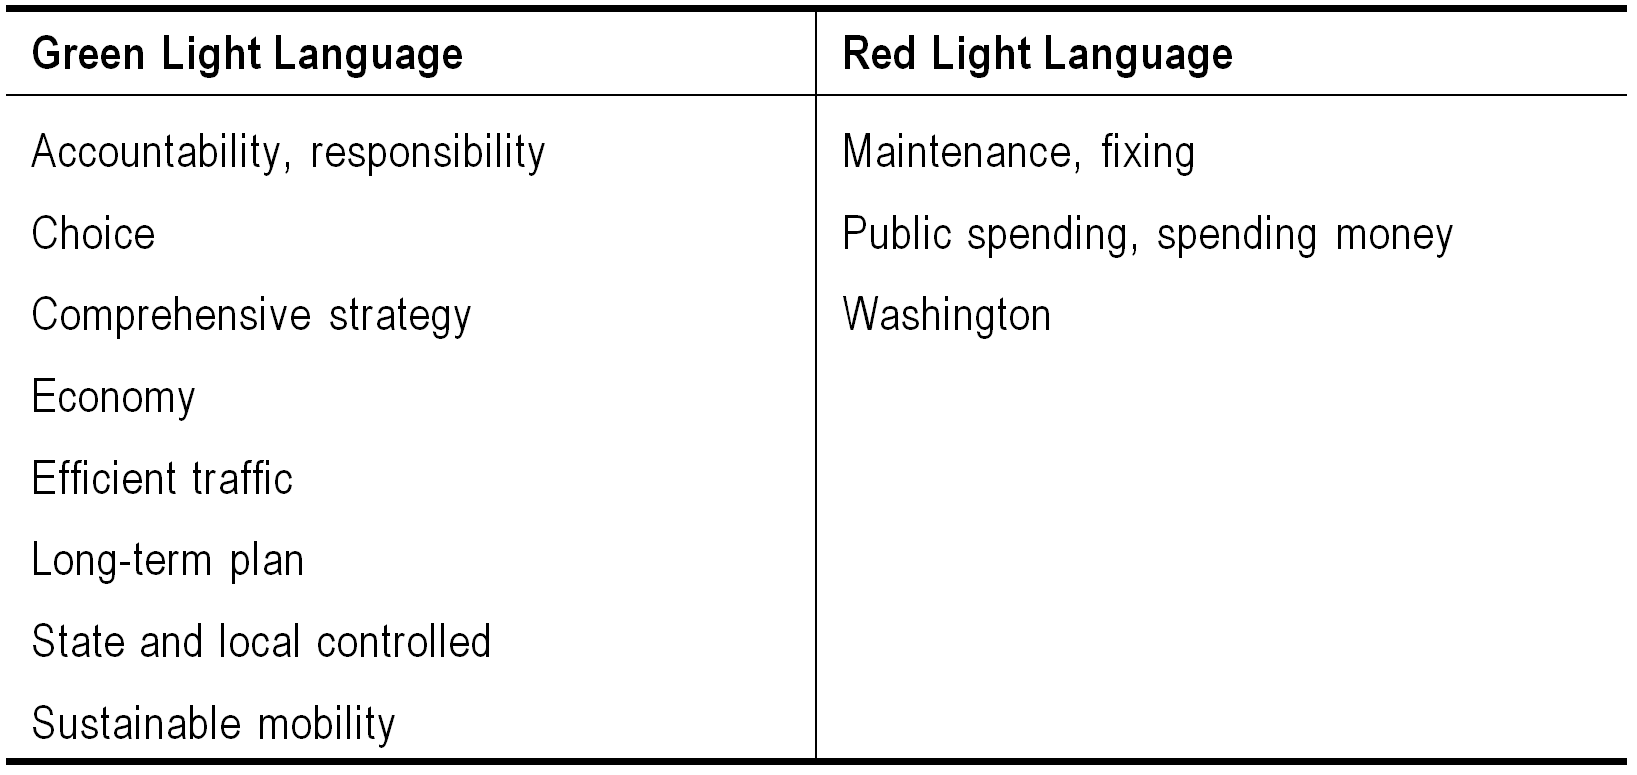 Green light language: accountability, responsibility, Choice, Comprehensive strategy, Economy, Efficient traffic, Long-term plan, State and local controlled, Sustainable mobility. Red light language: Maintenance, fixing, Public spending, spending money, Washington